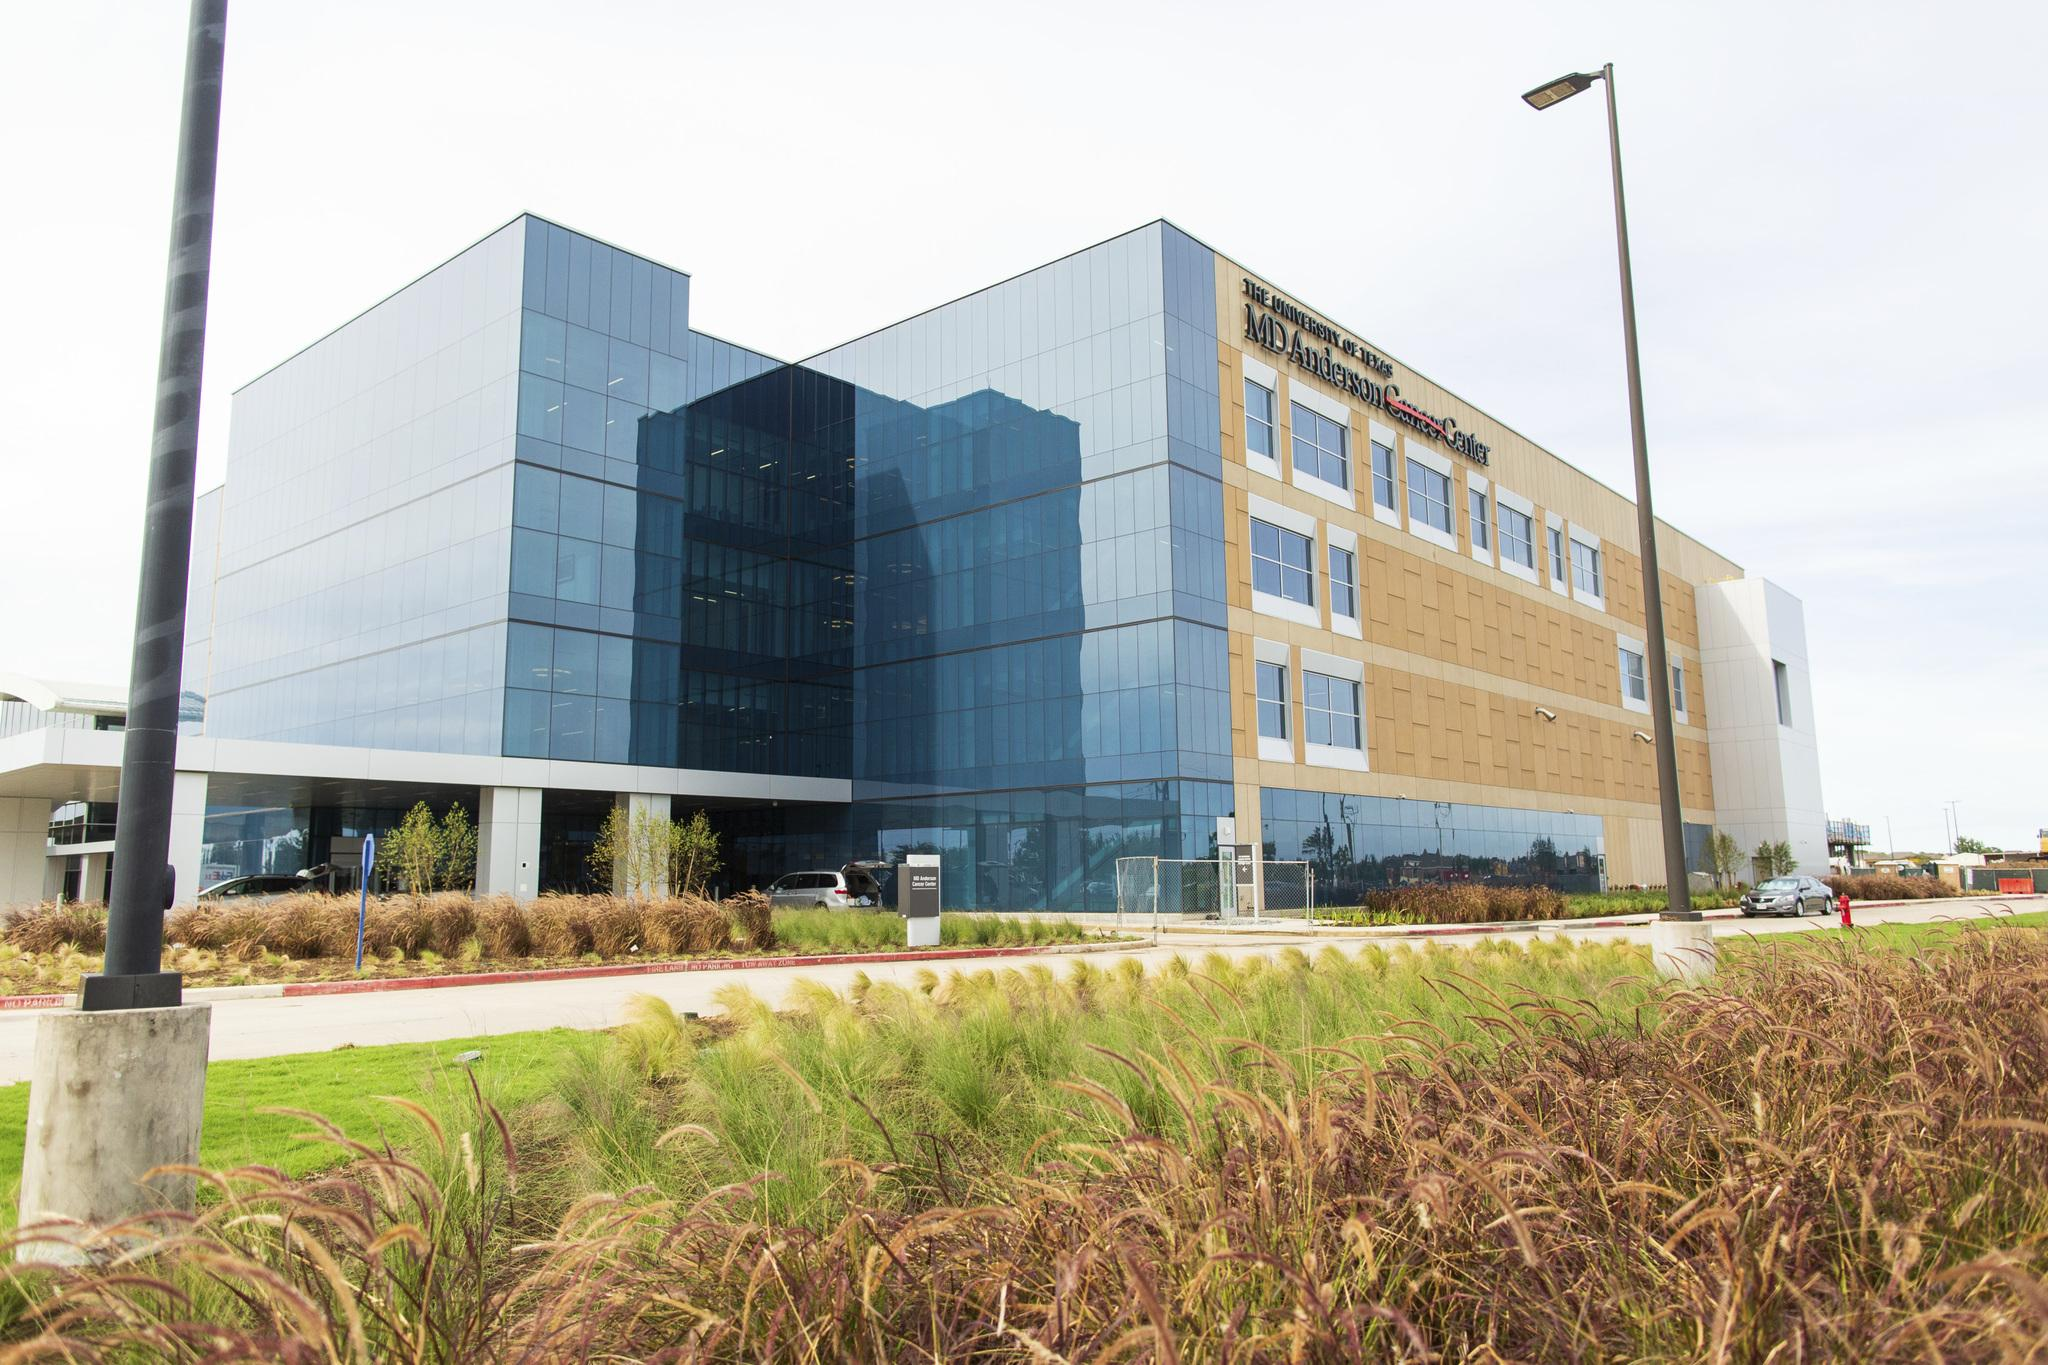 MD Anderson, UTMB open League City cancer facility - Houston Chronicle